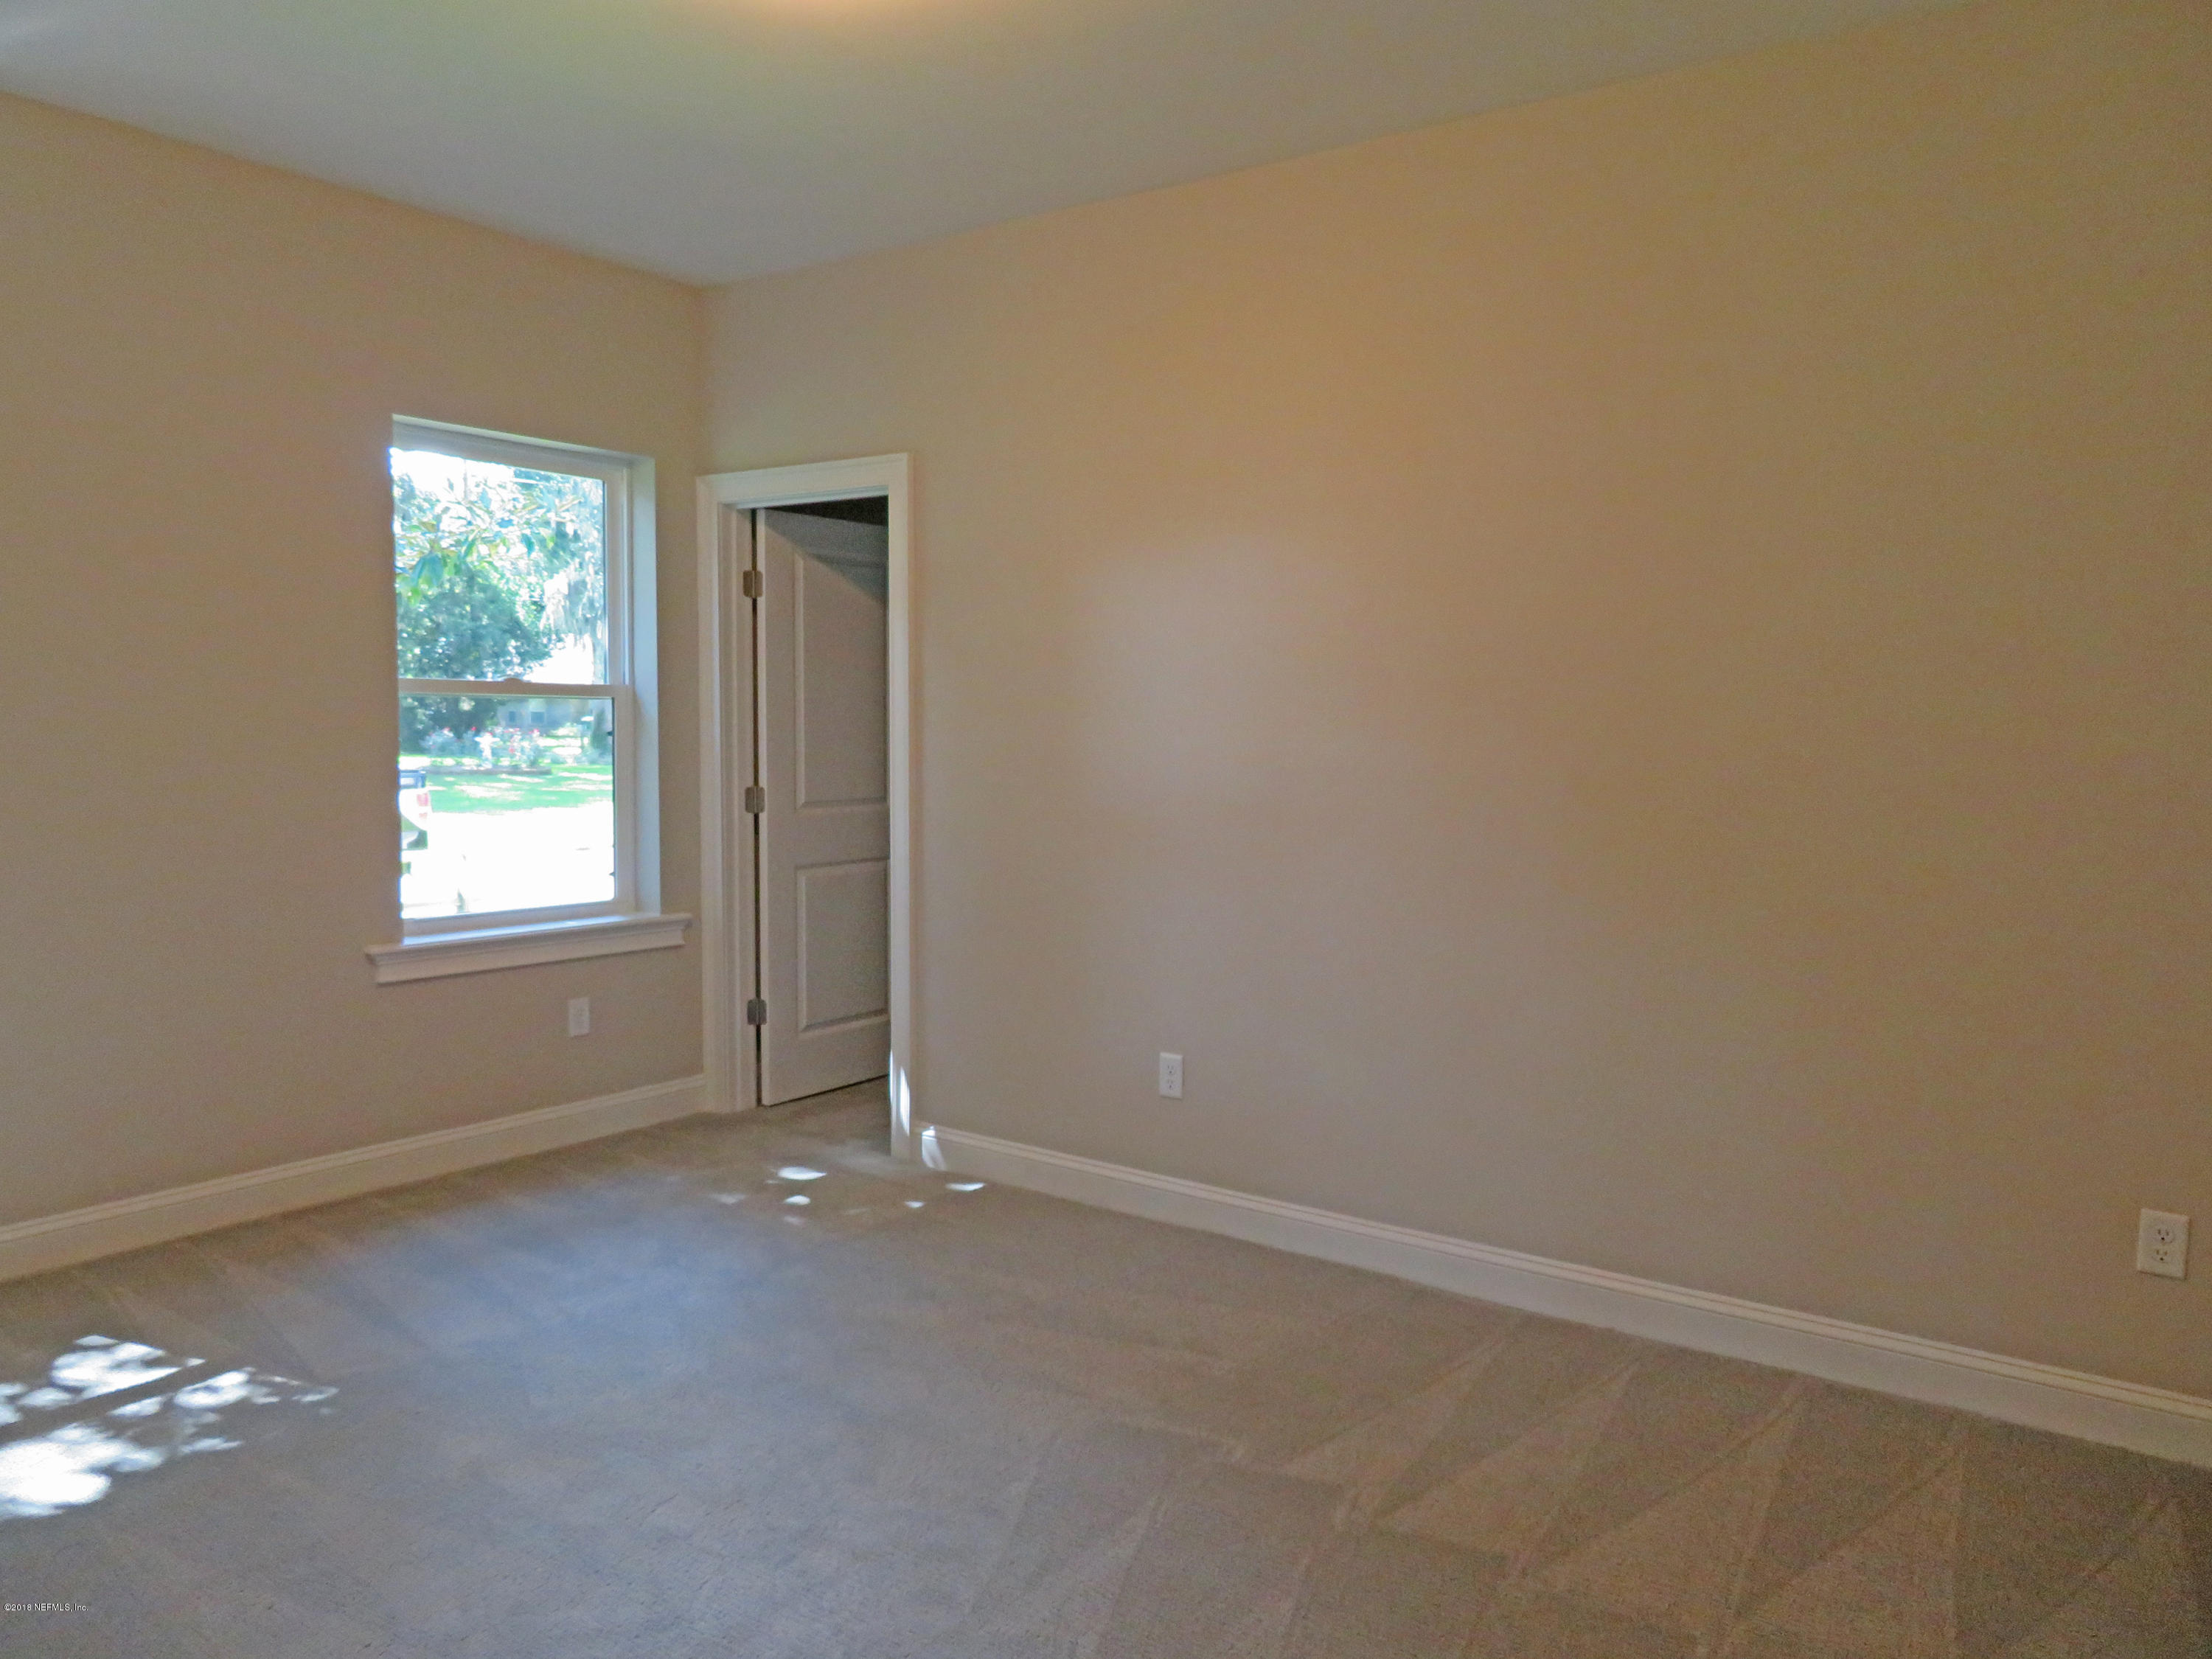 2583 WOODFERN, JACKSONVILLE, FLORIDA 32223, 4 Bedrooms Bedrooms, ,3 BathroomsBathrooms,Residential - single family,For sale,WOODFERN,953666